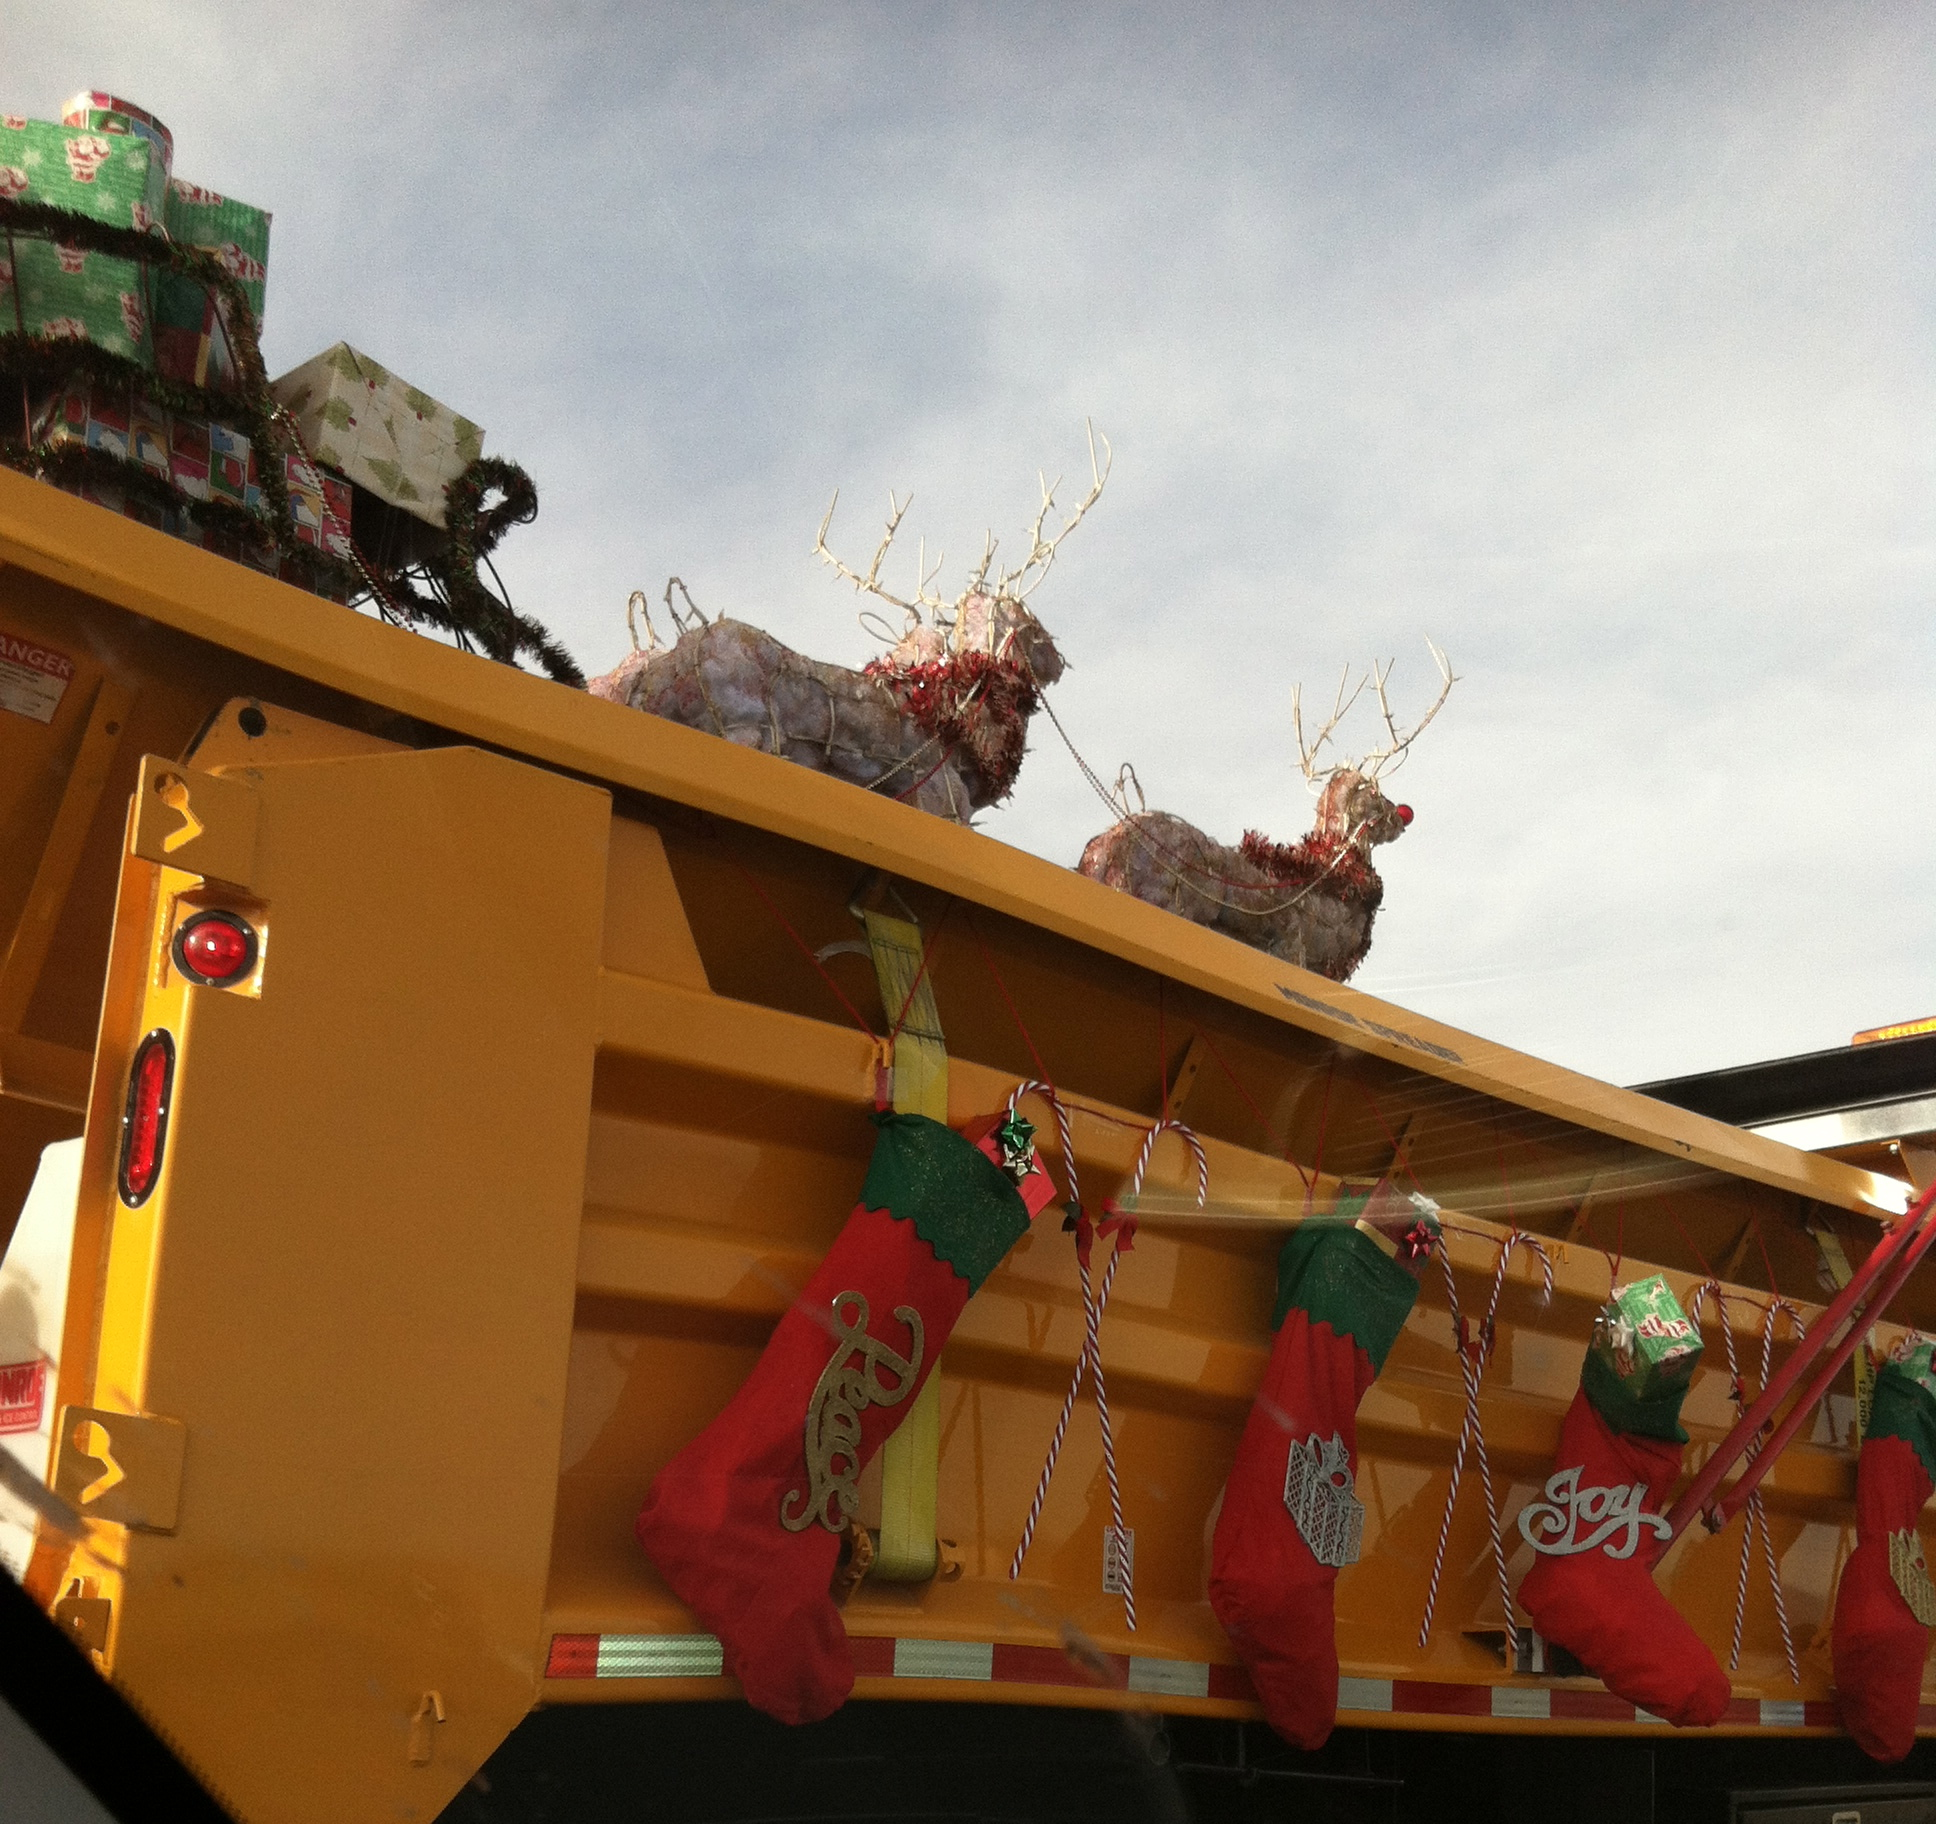 truck with decorations